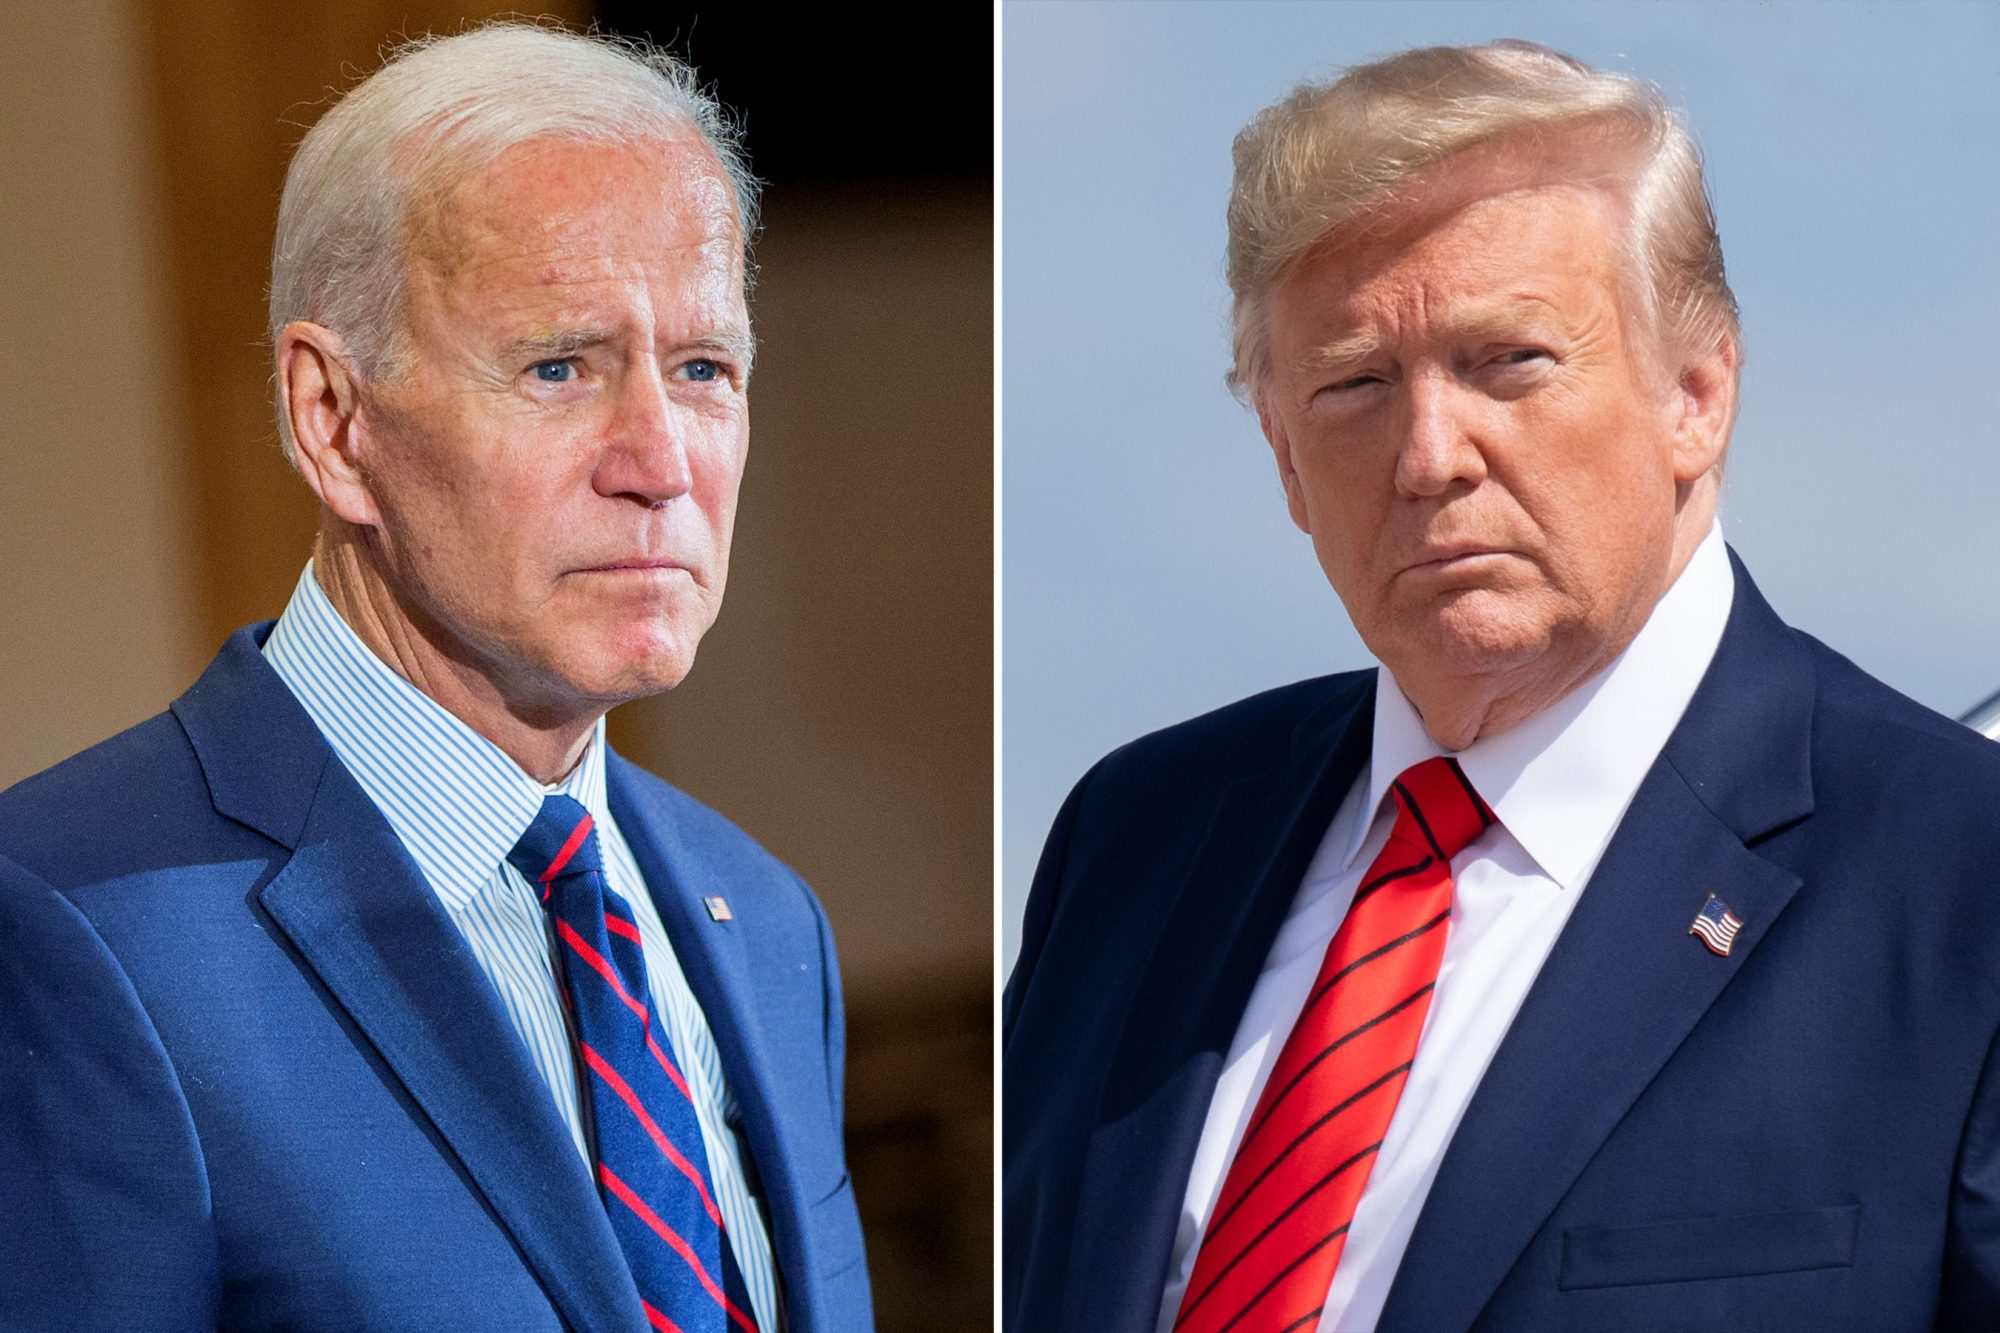 Joe Biden and Trump